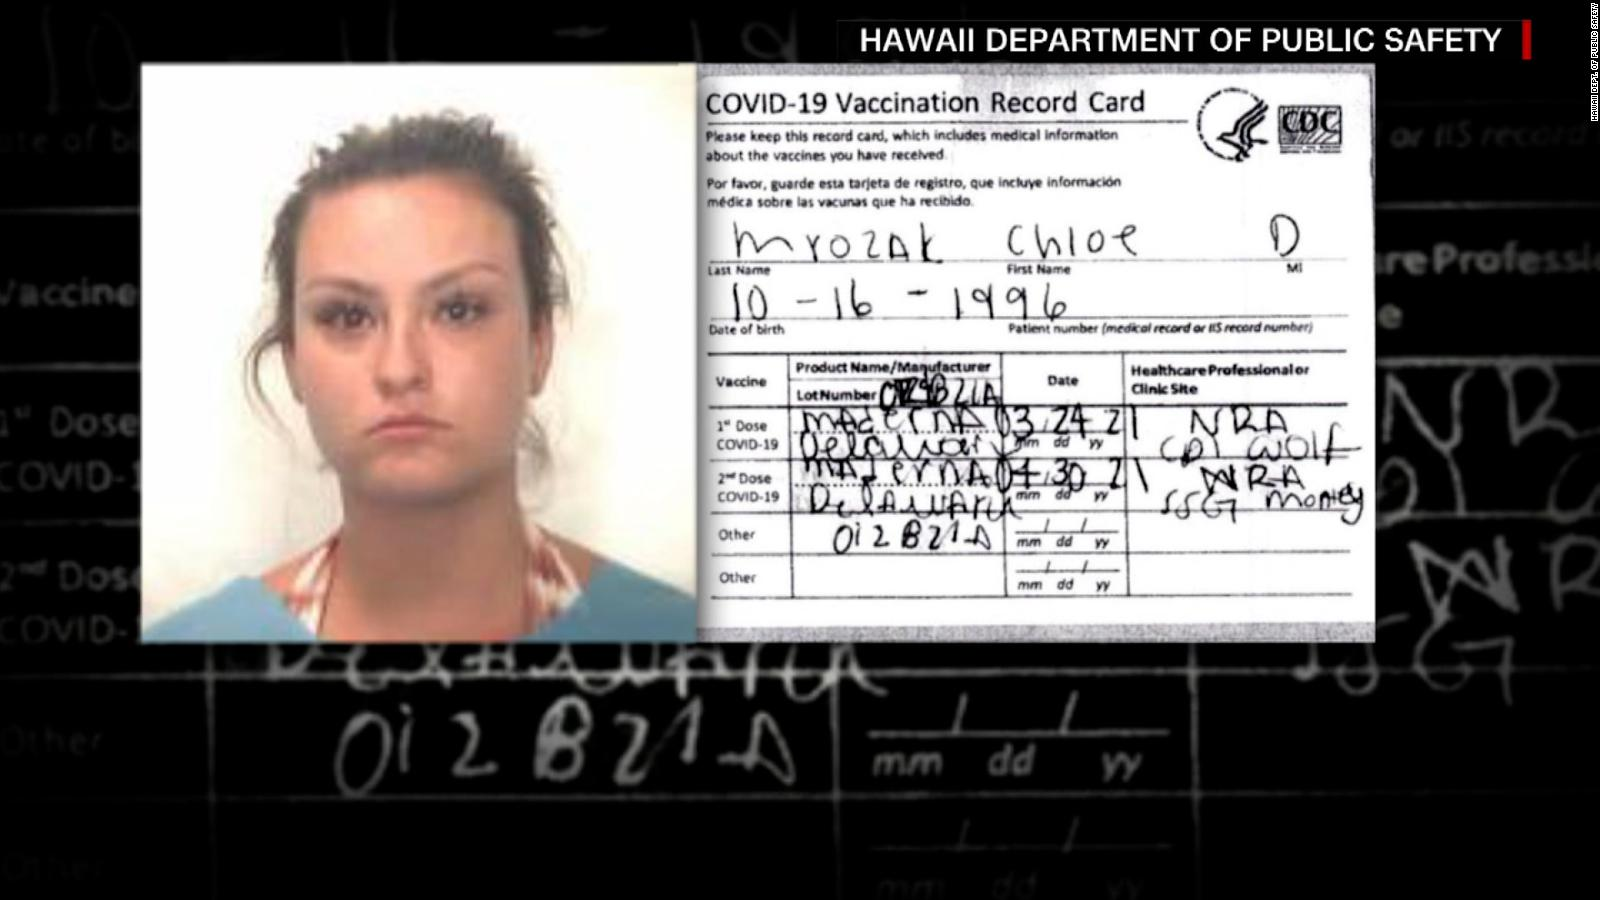 Misspelling leads to Illinois woman being arrested, charged over fake COVID-19 vaccination card at Honolulu airport